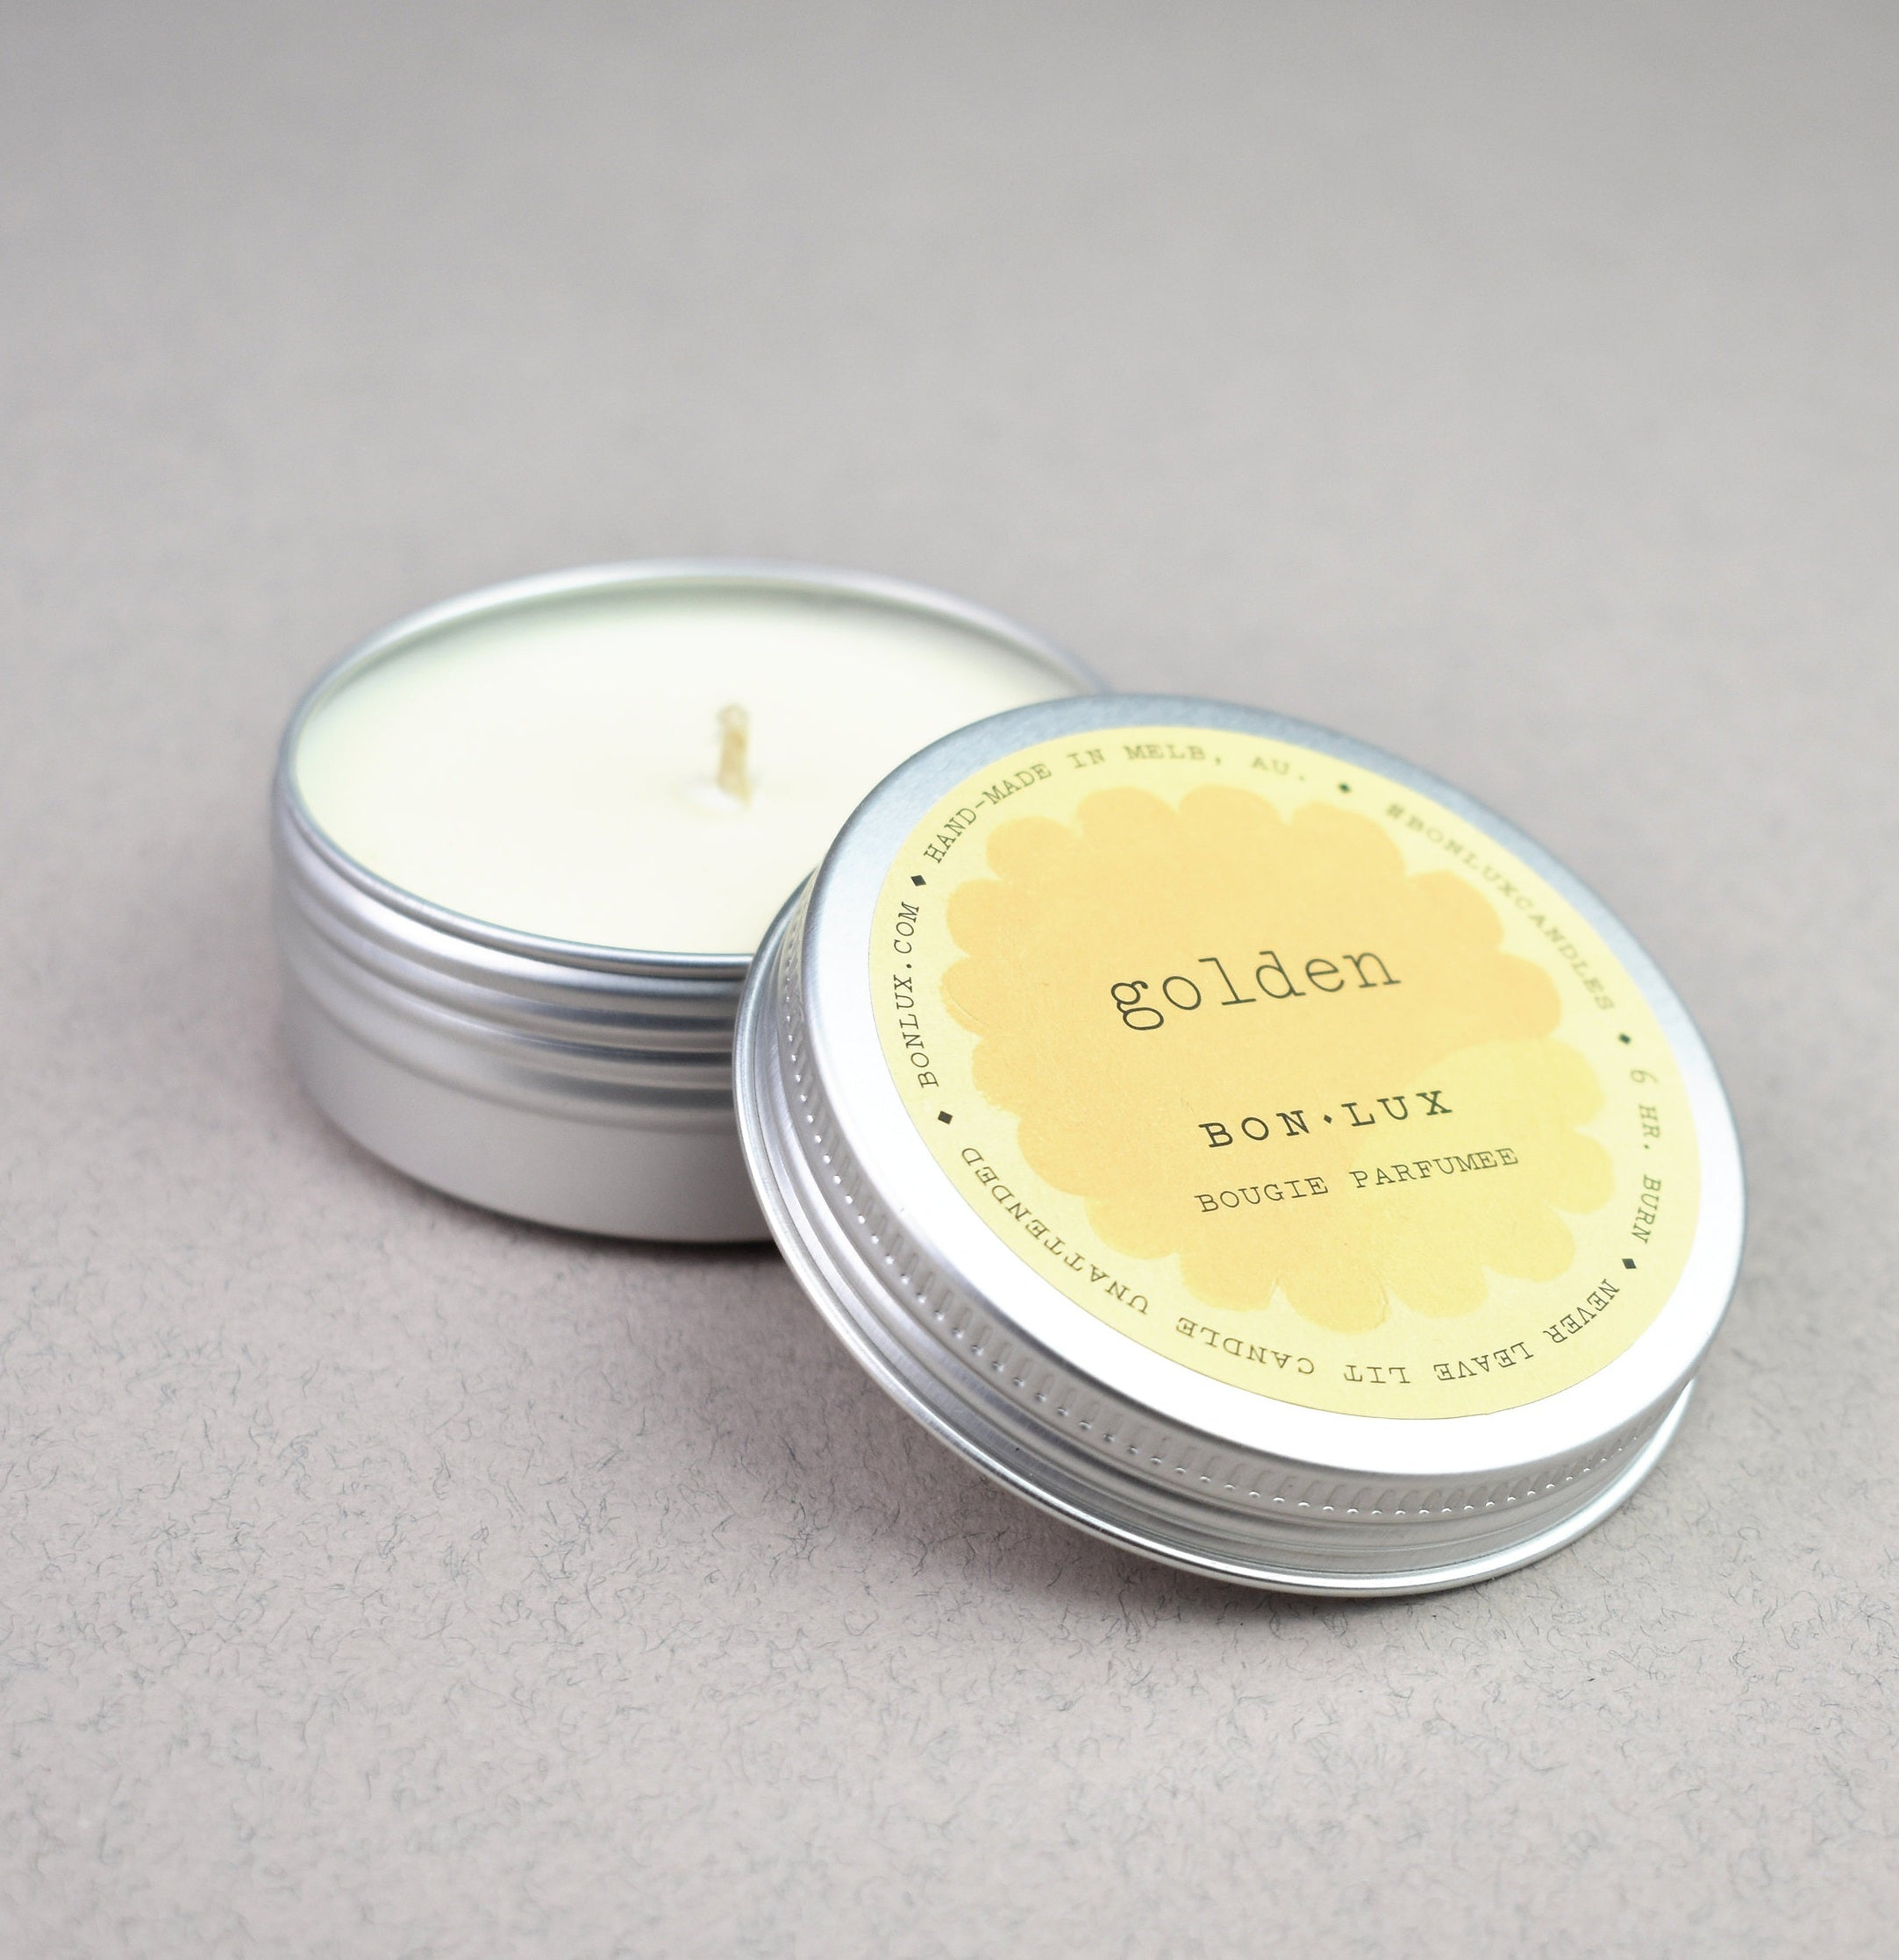 Travel Candle- Golden